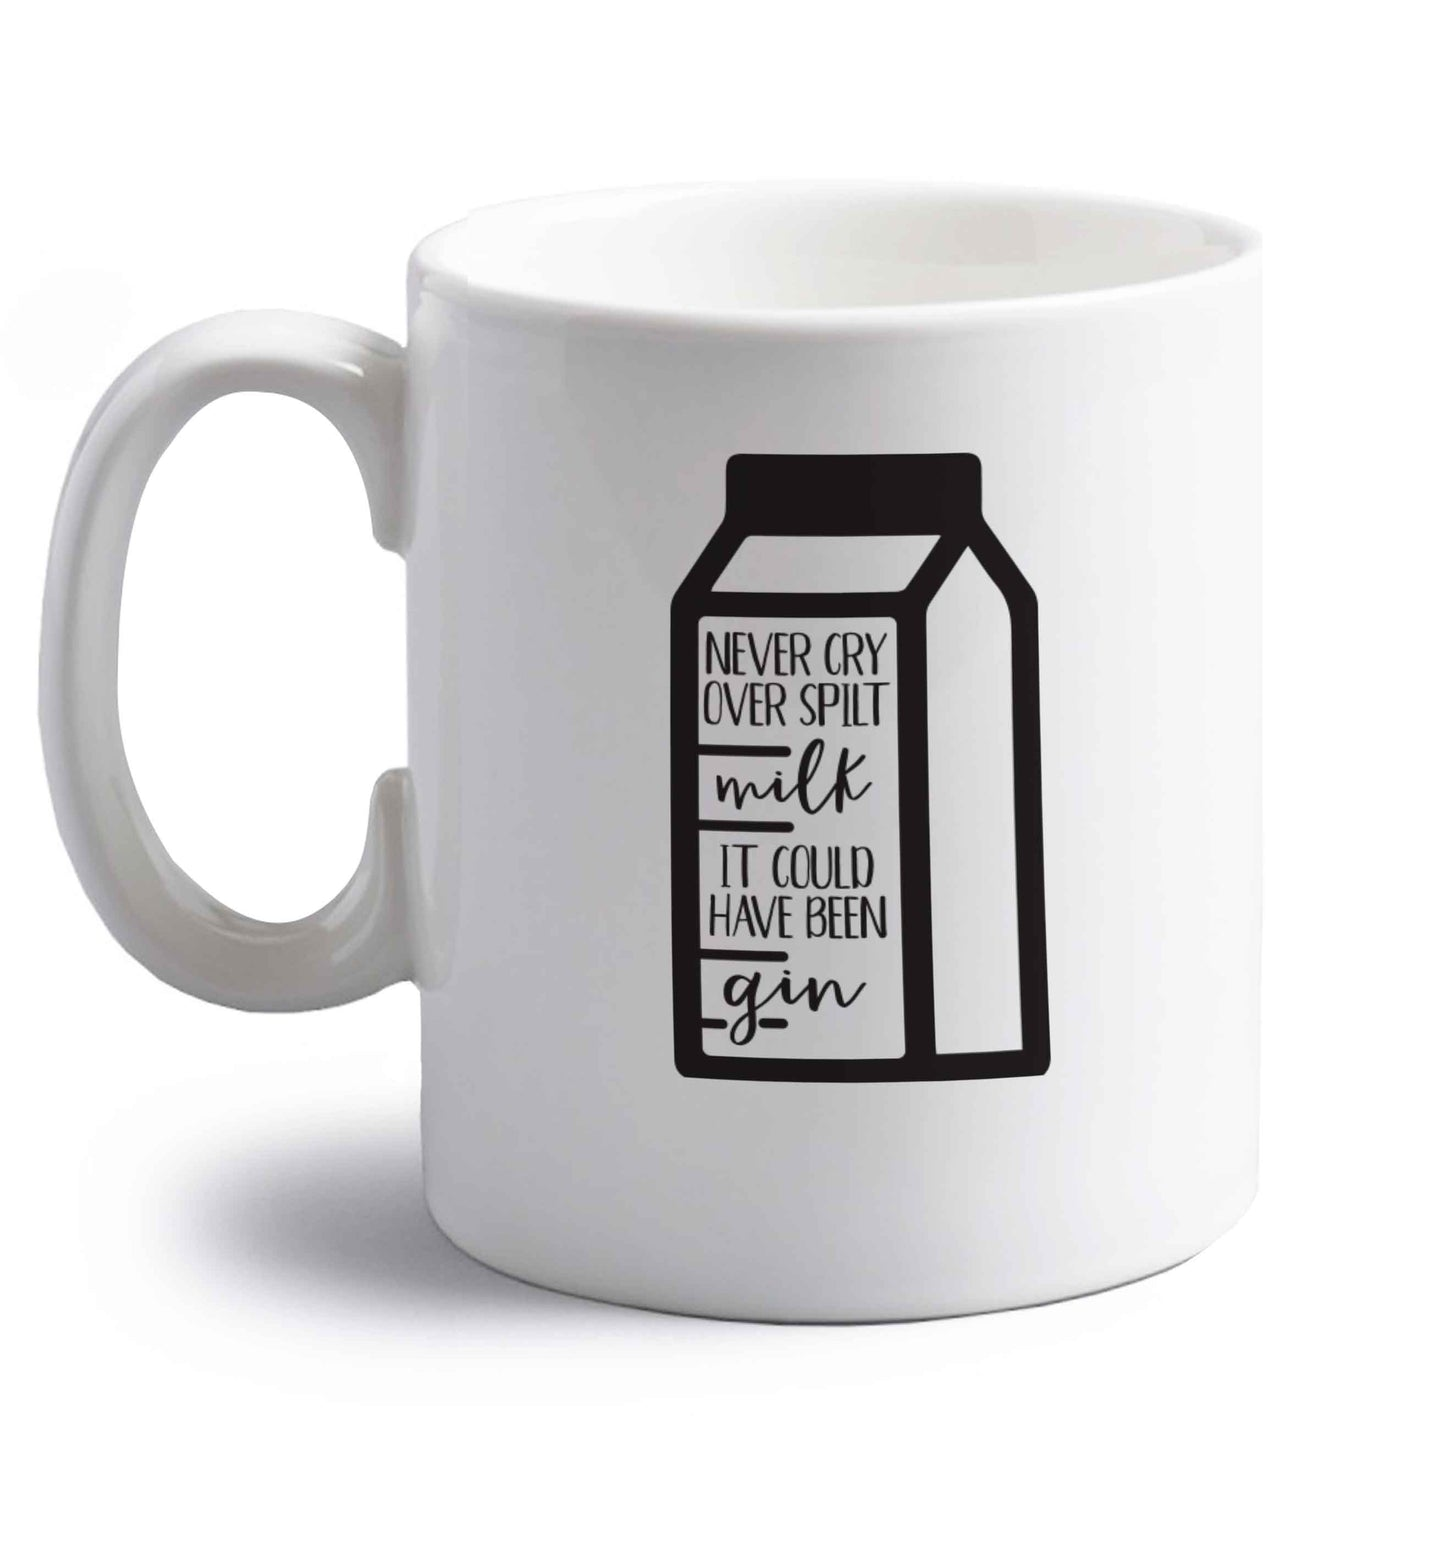 Never cry over spilt milk, it could have been gin right handed white ceramic mug